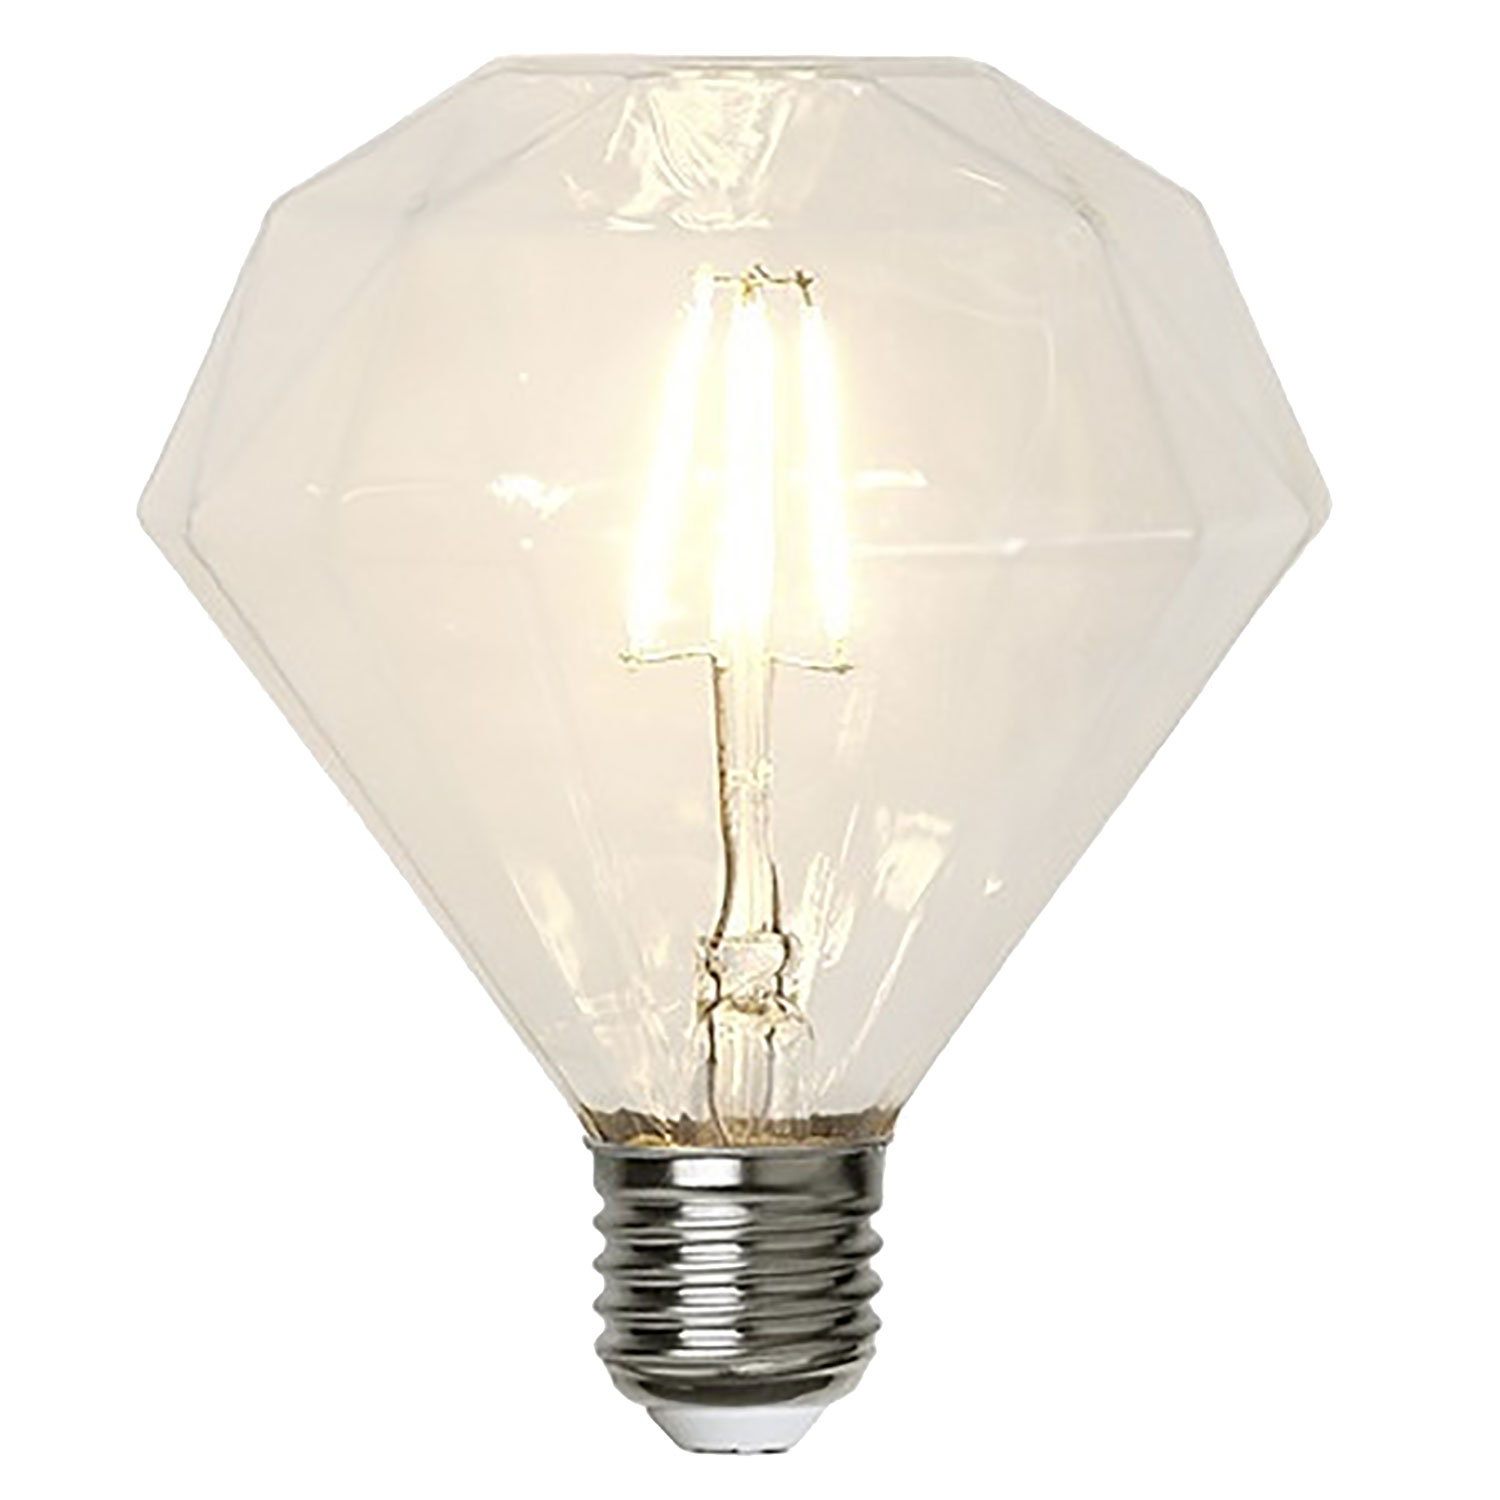 LED-lampa E27 filament, transparent